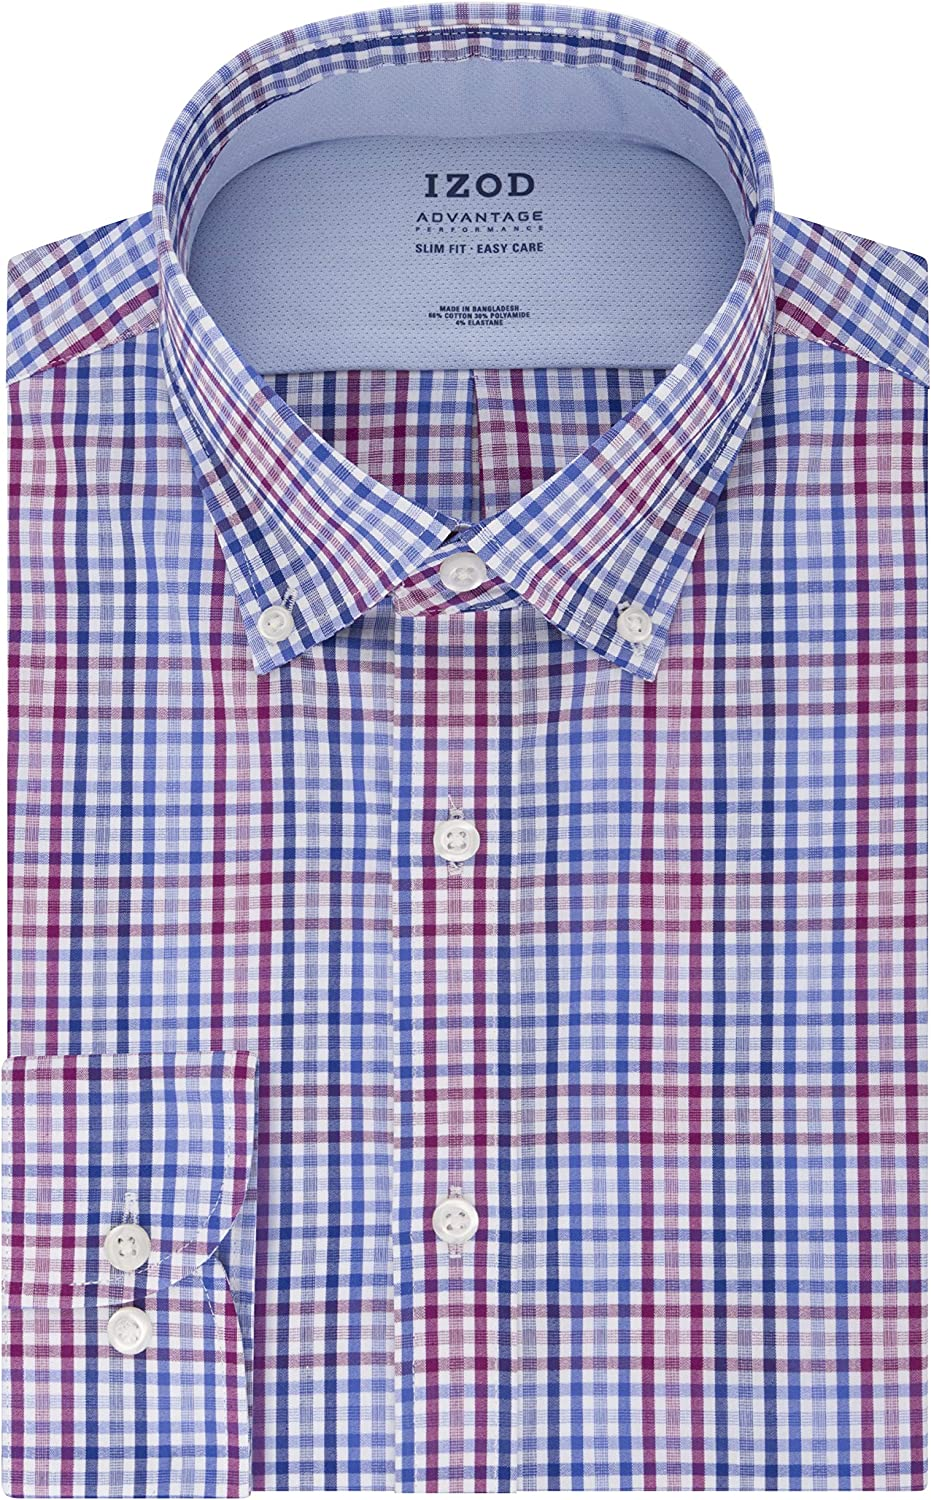 outlet IZOD Men's Dress Shirt Slim Fit FX Collar C Cooling Cool Ranking TOP9 Stretch